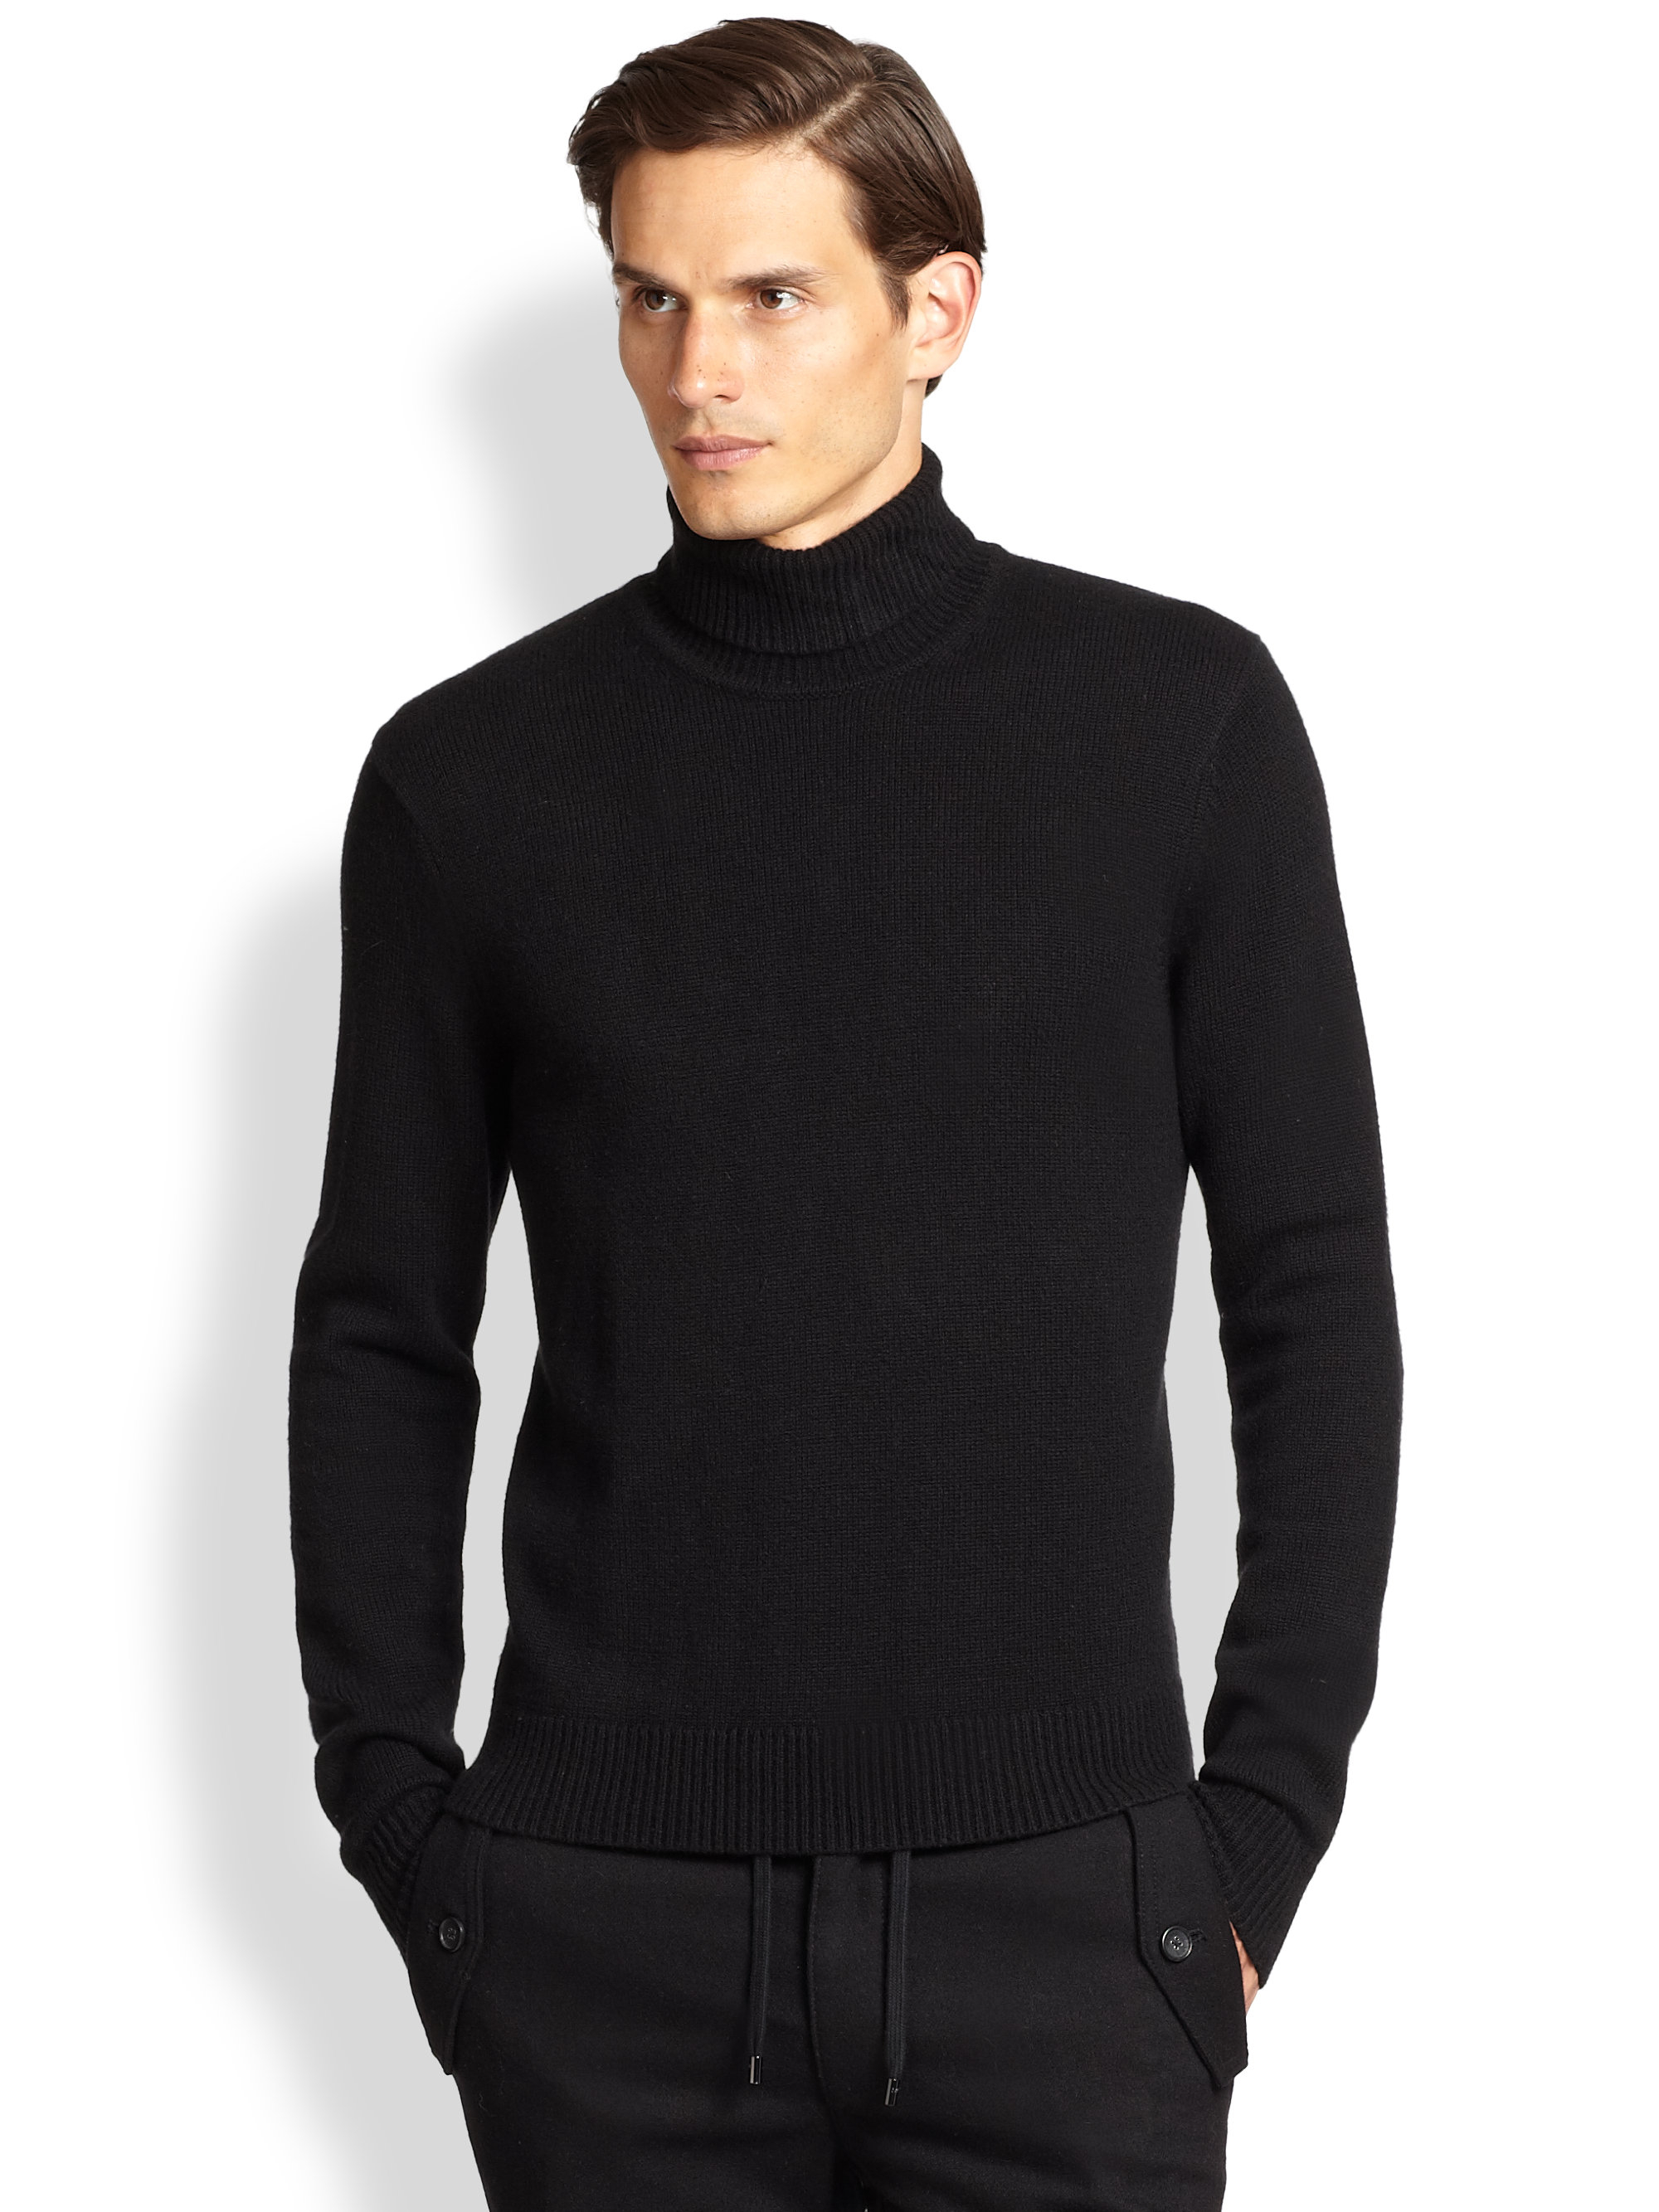 Shop men's sweaters at Vince, featuring rich textures, ultra-soft knits and cuts that look effortlessly cool. Enjoy free shipping on all orders and returns.